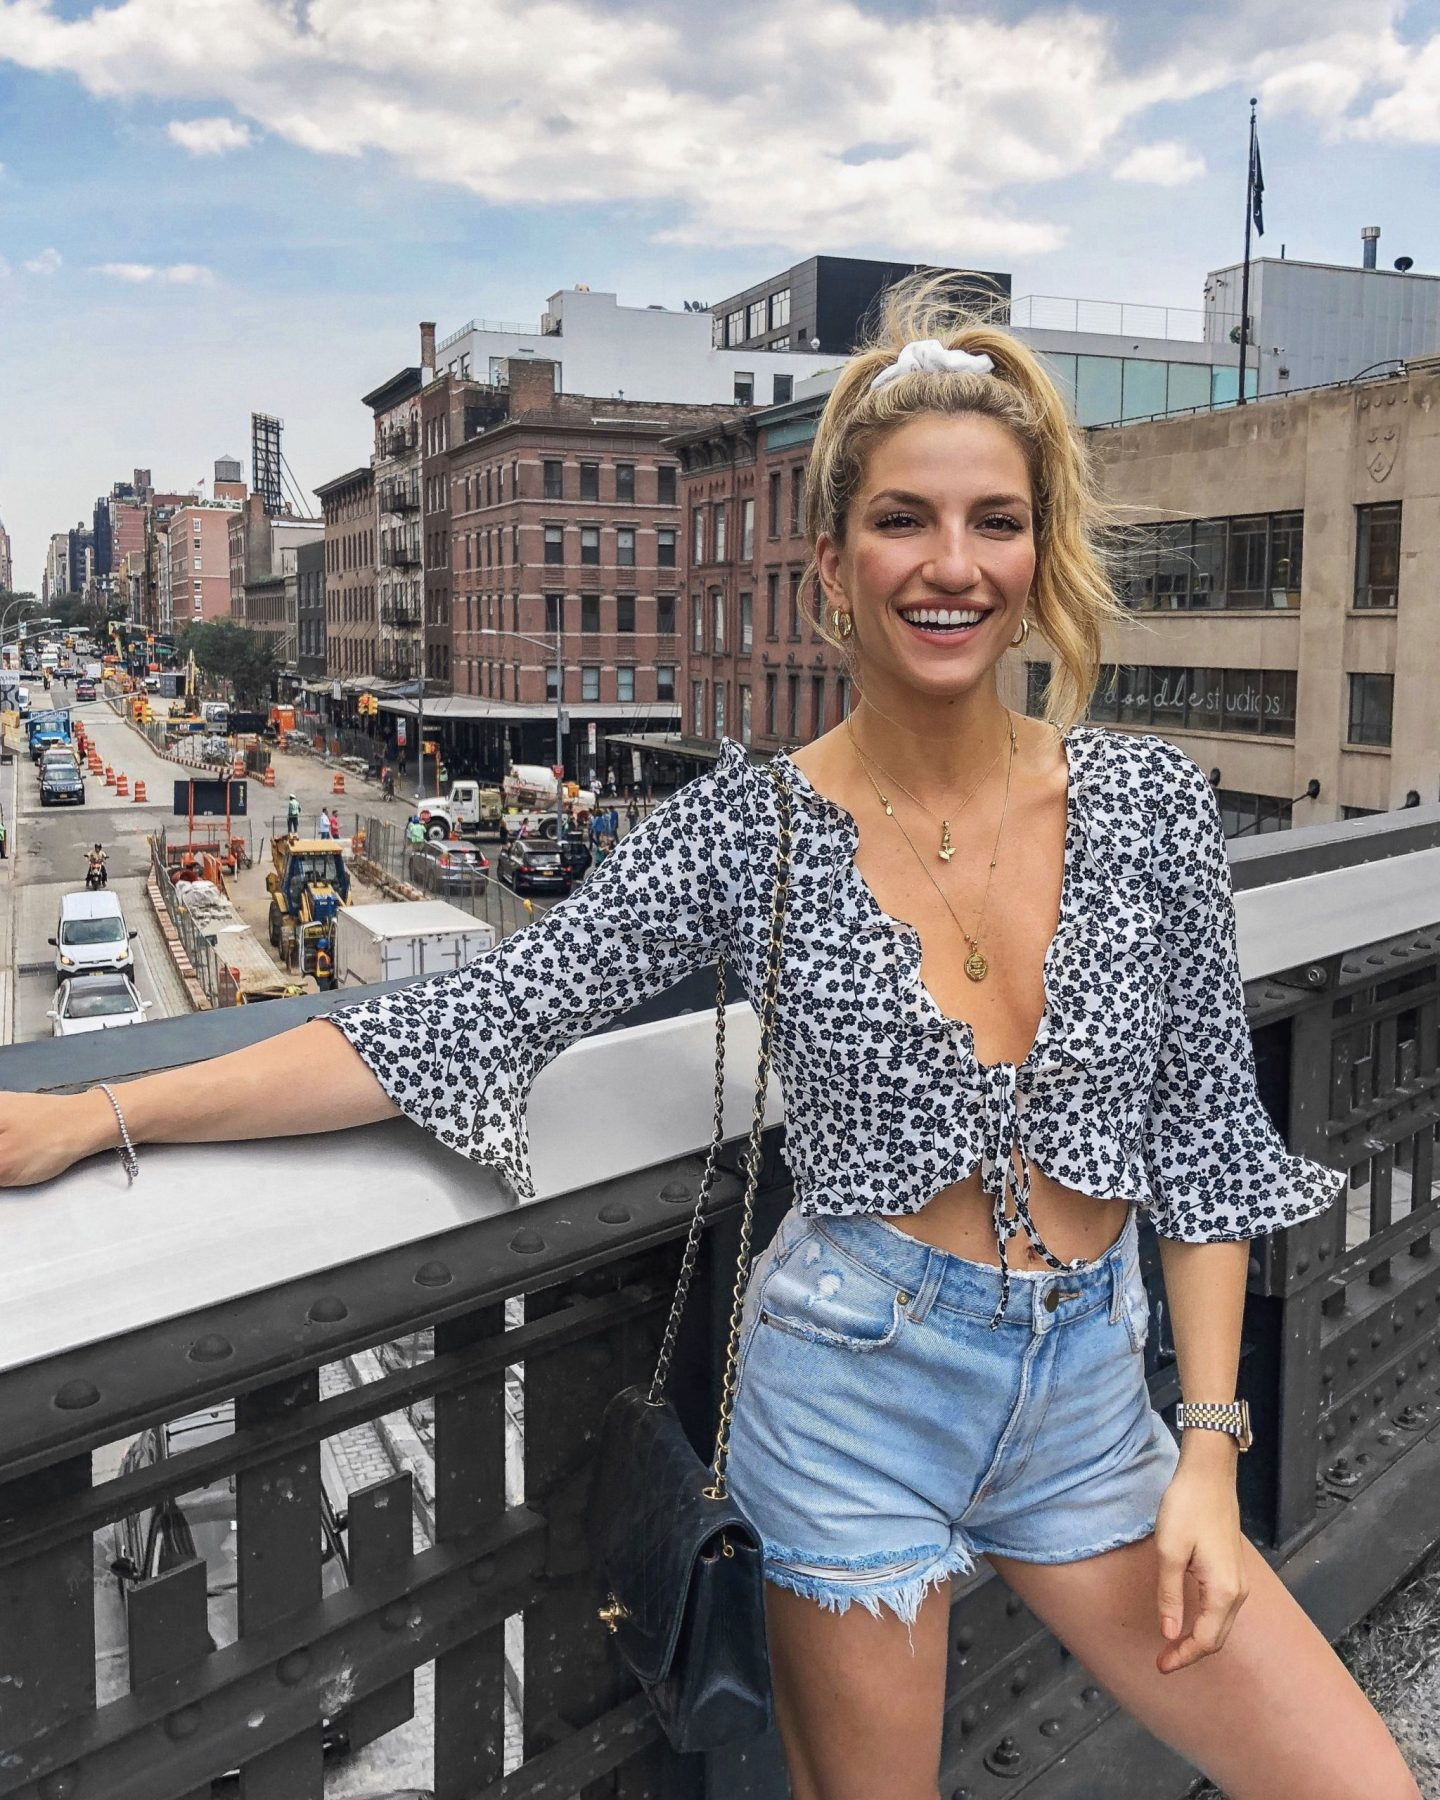 Cassandra DiMicco, Cass DiMicco, Dressed For Dreams, NYC, New York City, New York, Street Style NYC, Street Style 2018, NYC Street Style Street Style Outfits, 2018 Trends, NYC Fashion Blogger, NYC to do list, NYC to do, NYC bucket list, NYC Instagram Spots, the high line, meatpacking district, verge girl, rollas denim skirts, floral tie front top, black classic chanel, chanel sneakers,